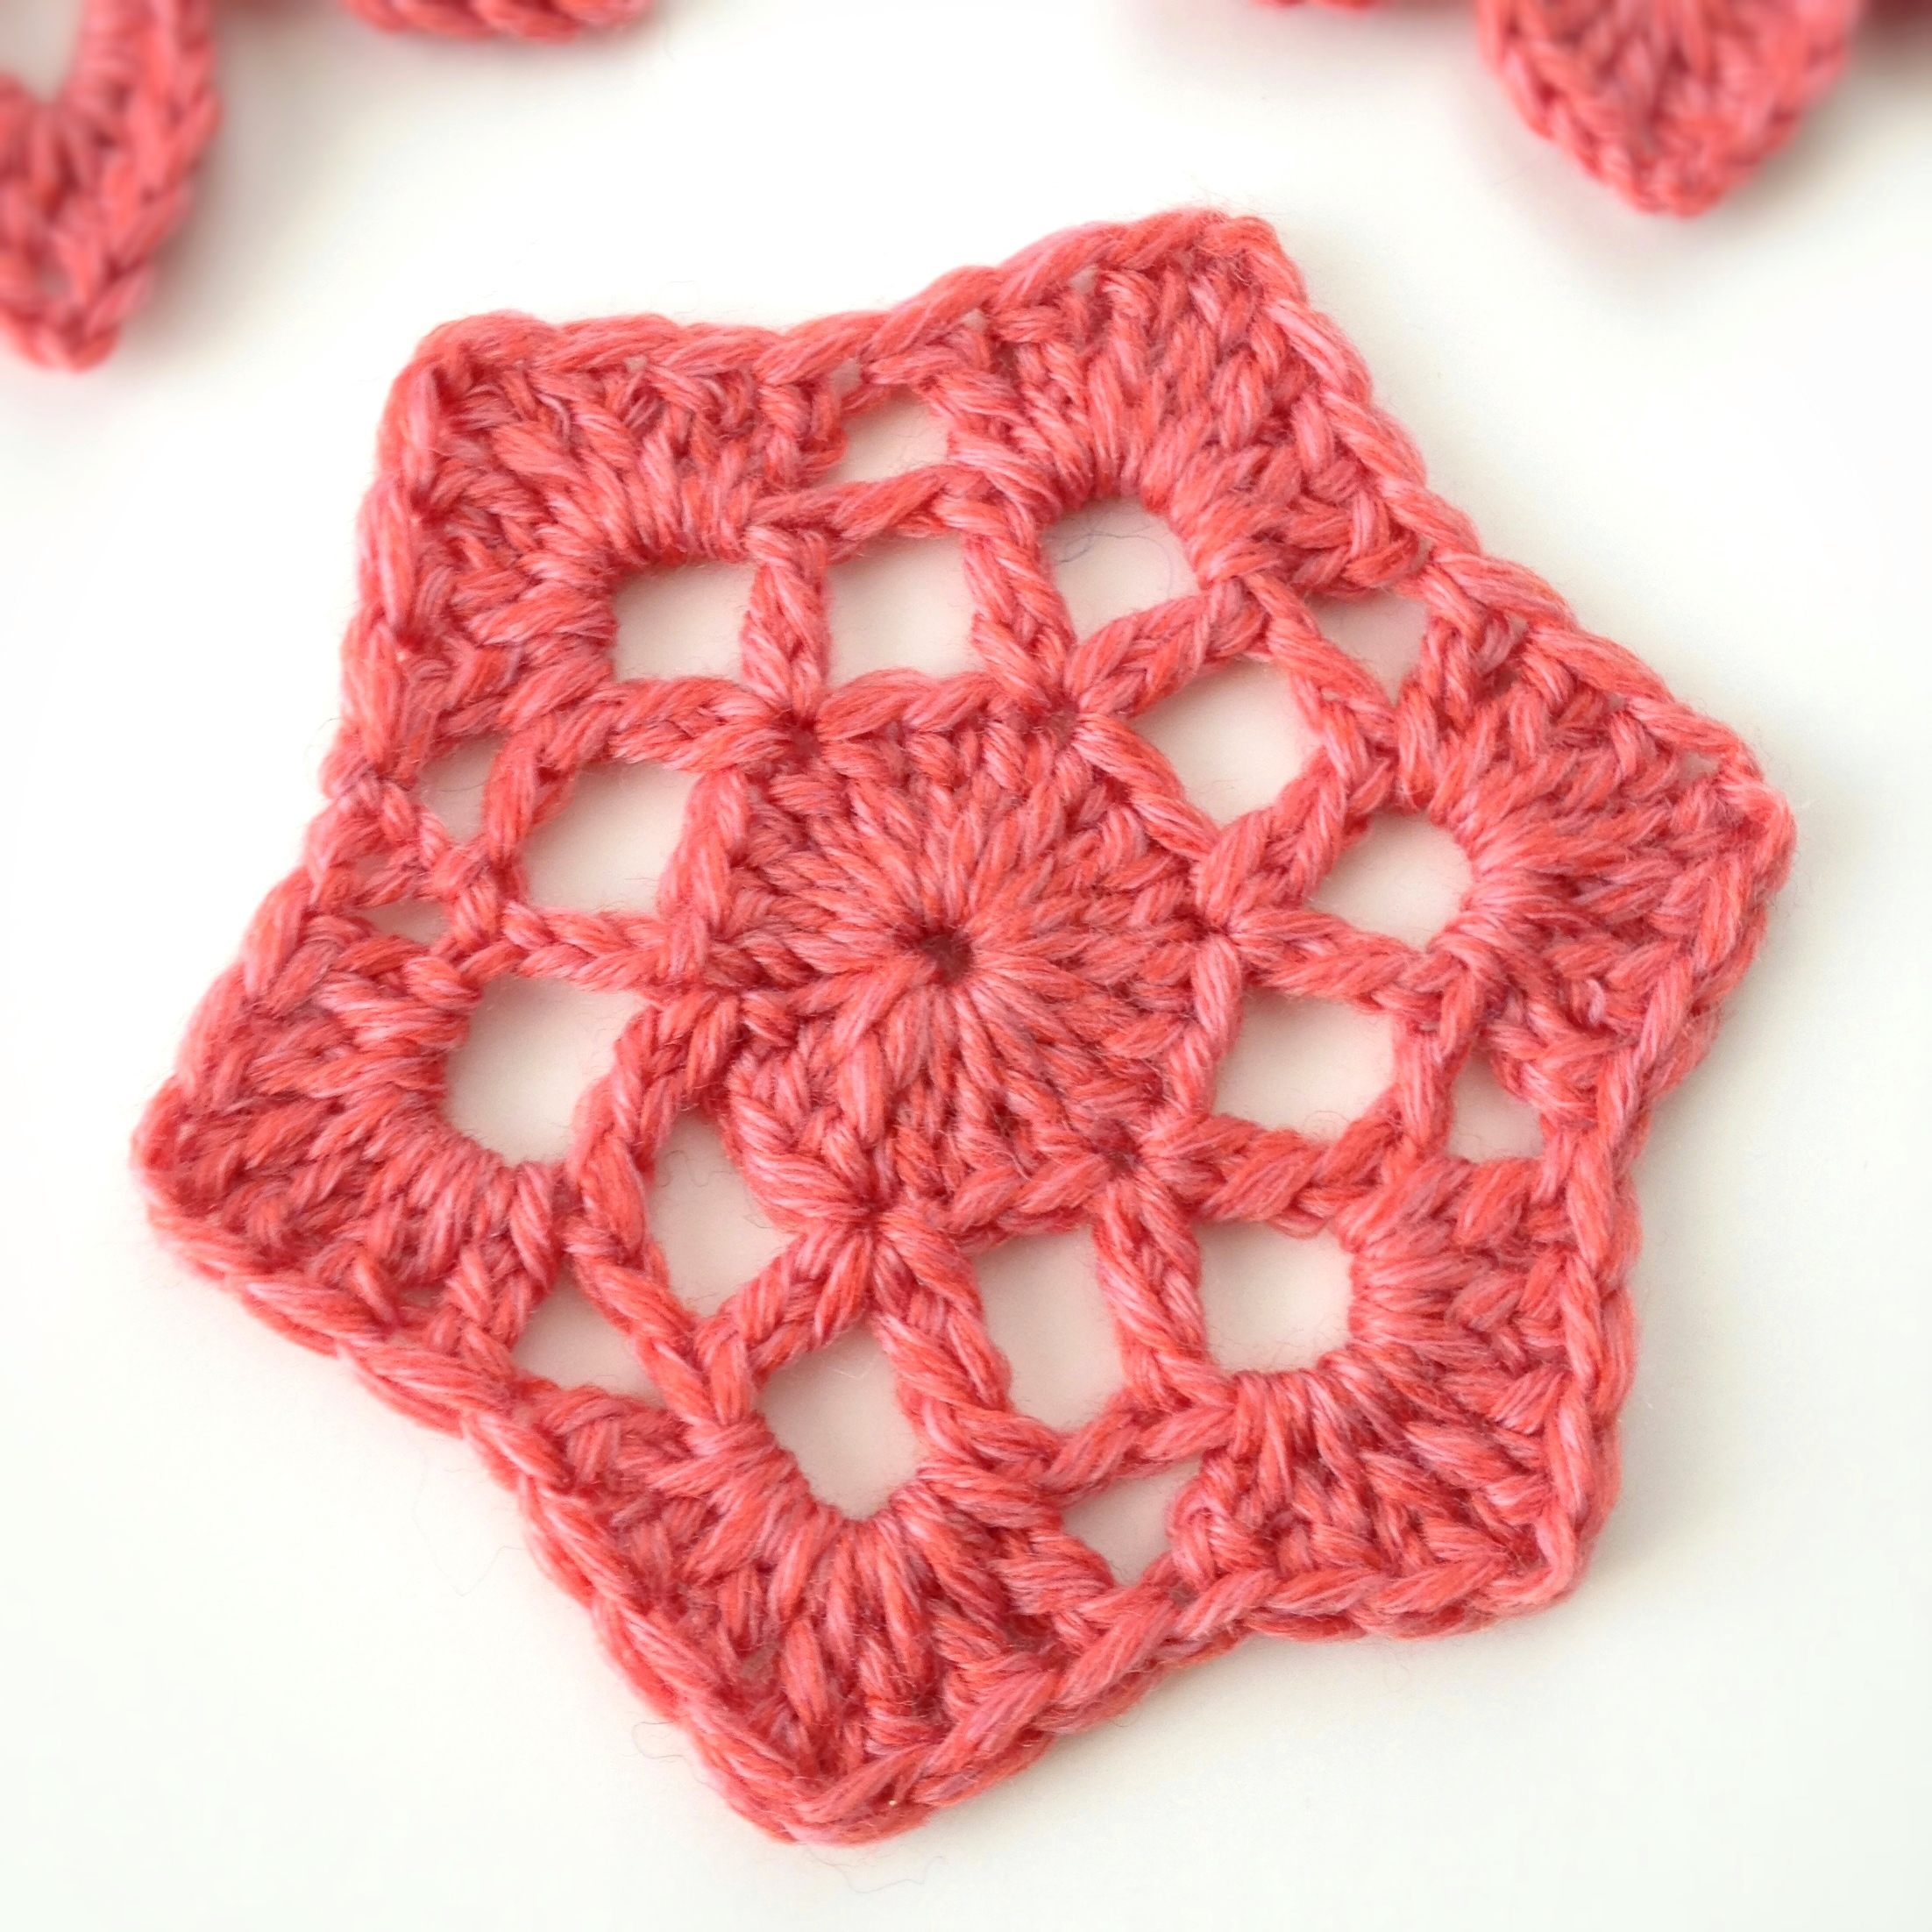 How To Crochet A : Crochet motif #53 from ?Beyond the Square Crochet Motifs?